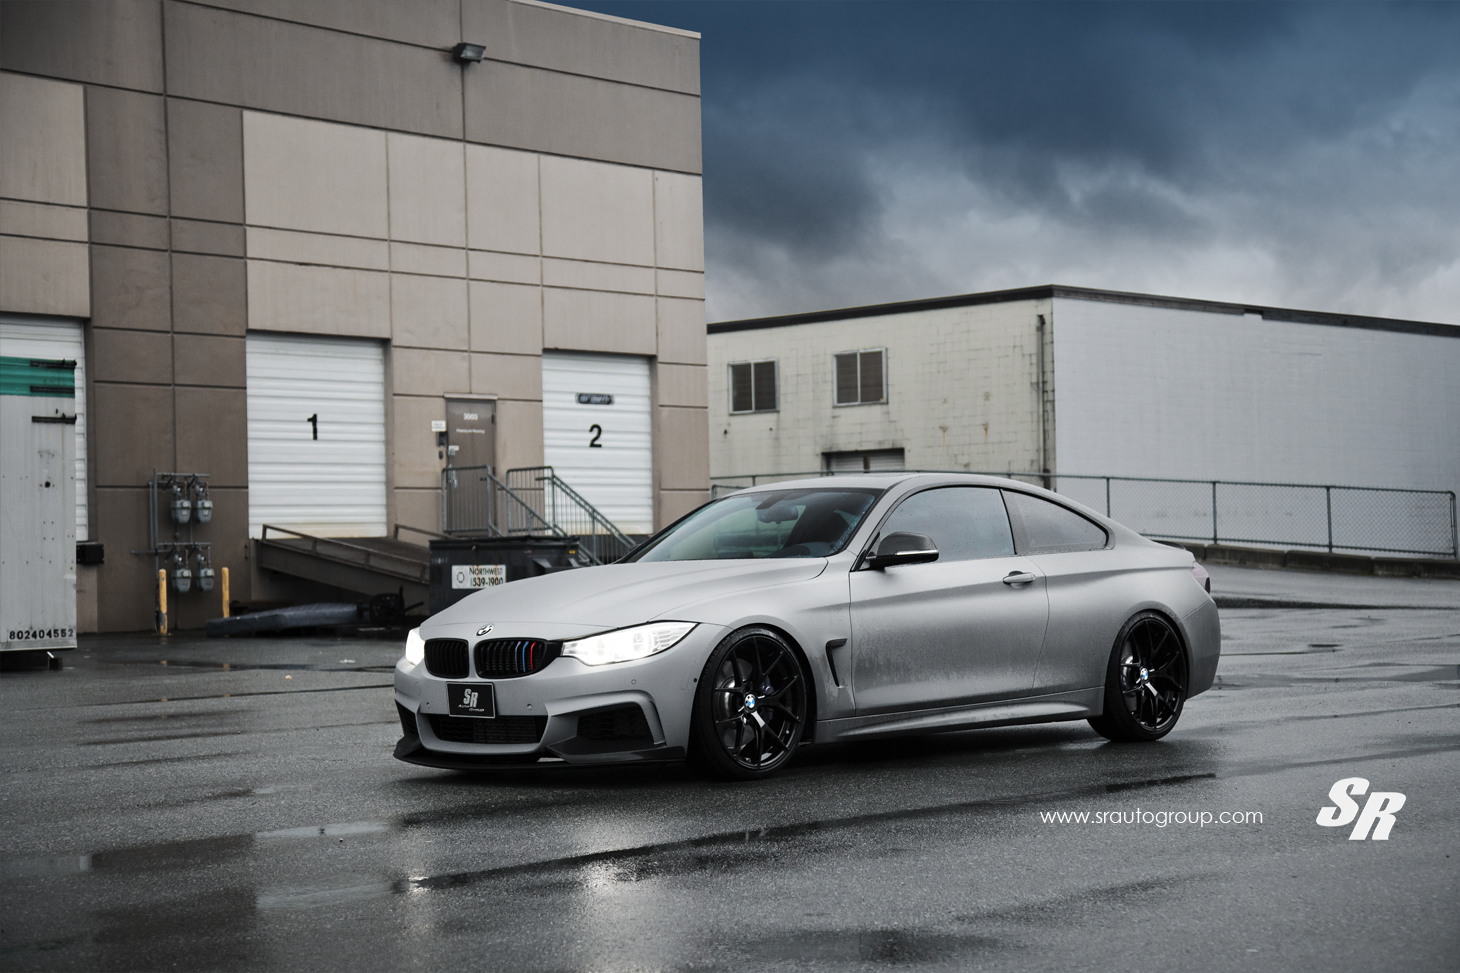 The Gear Shift Bmw M4 Lowered On Pur Wheels